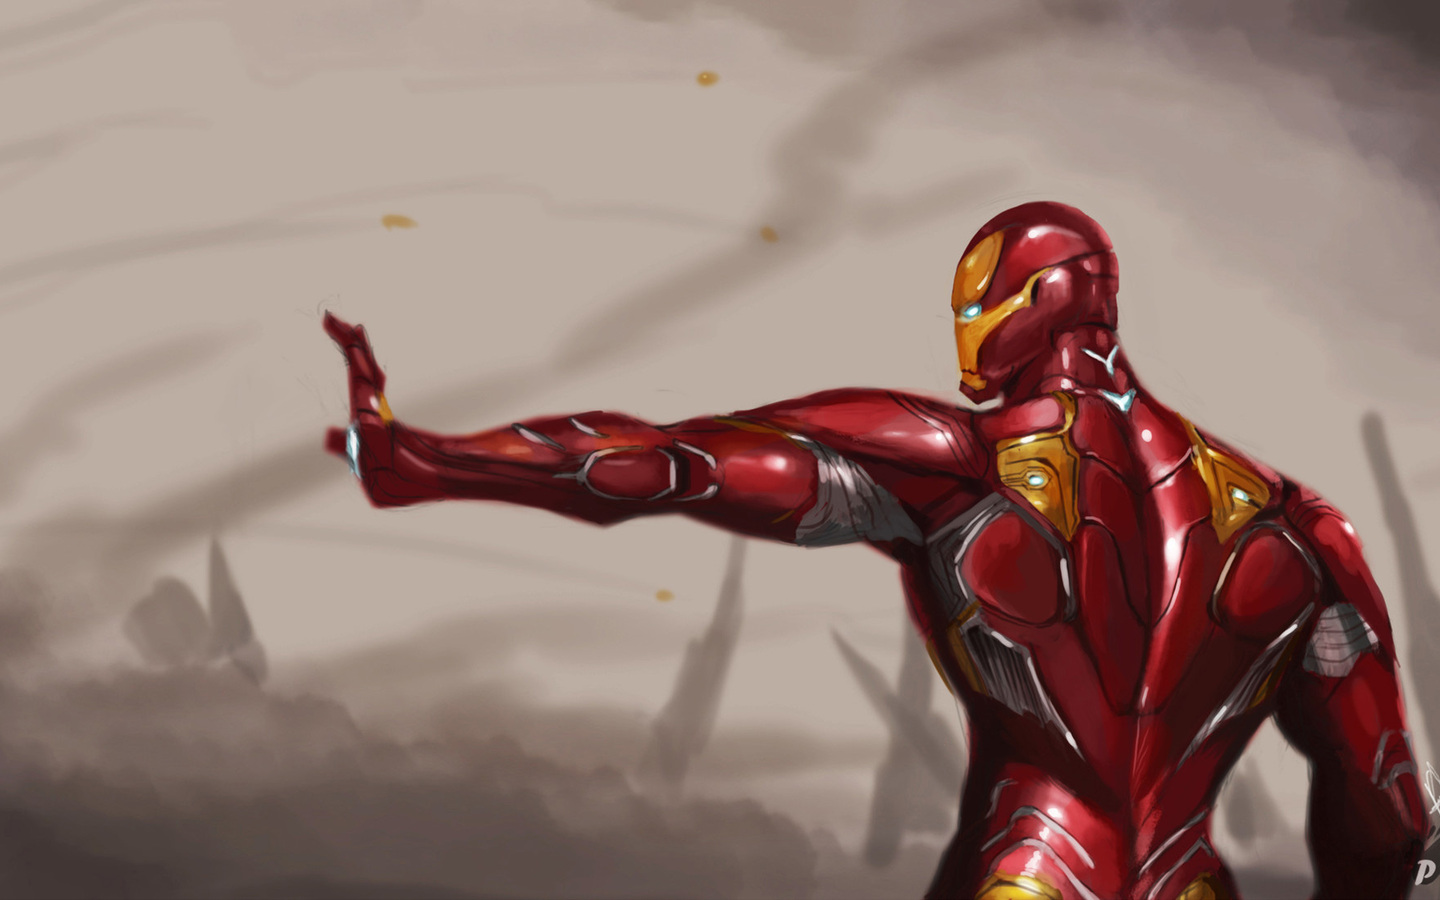 1440x900 Iron Man Mark 50 Suit Avengers Infinity War